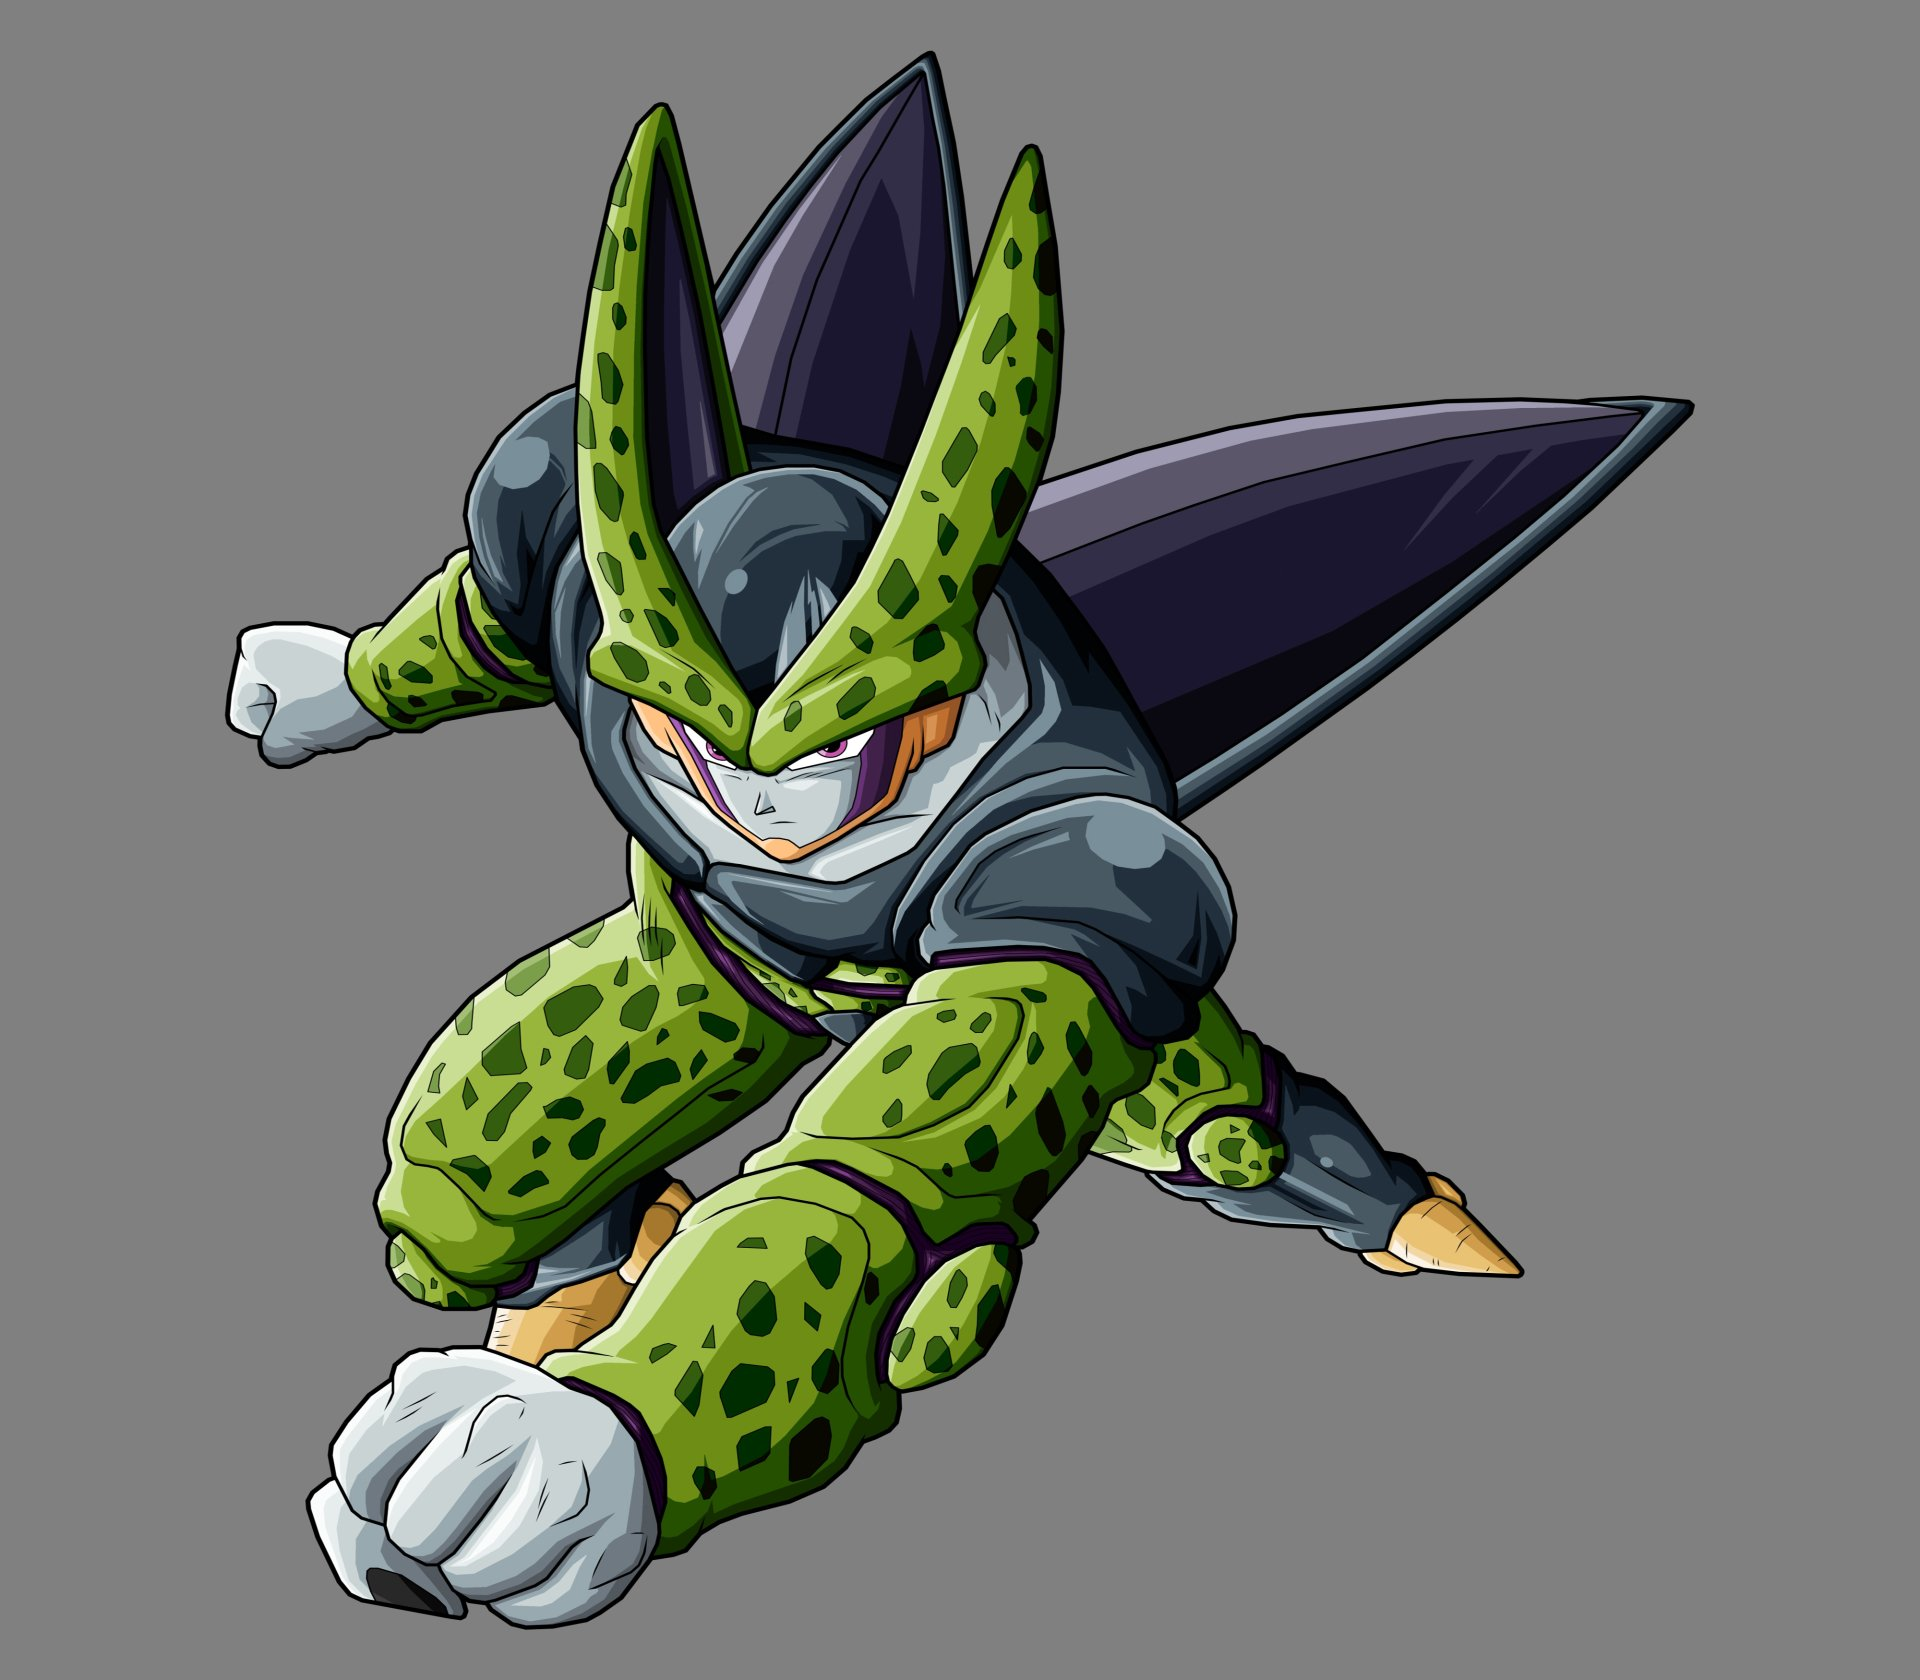 4k Wallpaper Dragon Ball: Cell Perfect 4k Ultra HD Wallpaper And Background Image